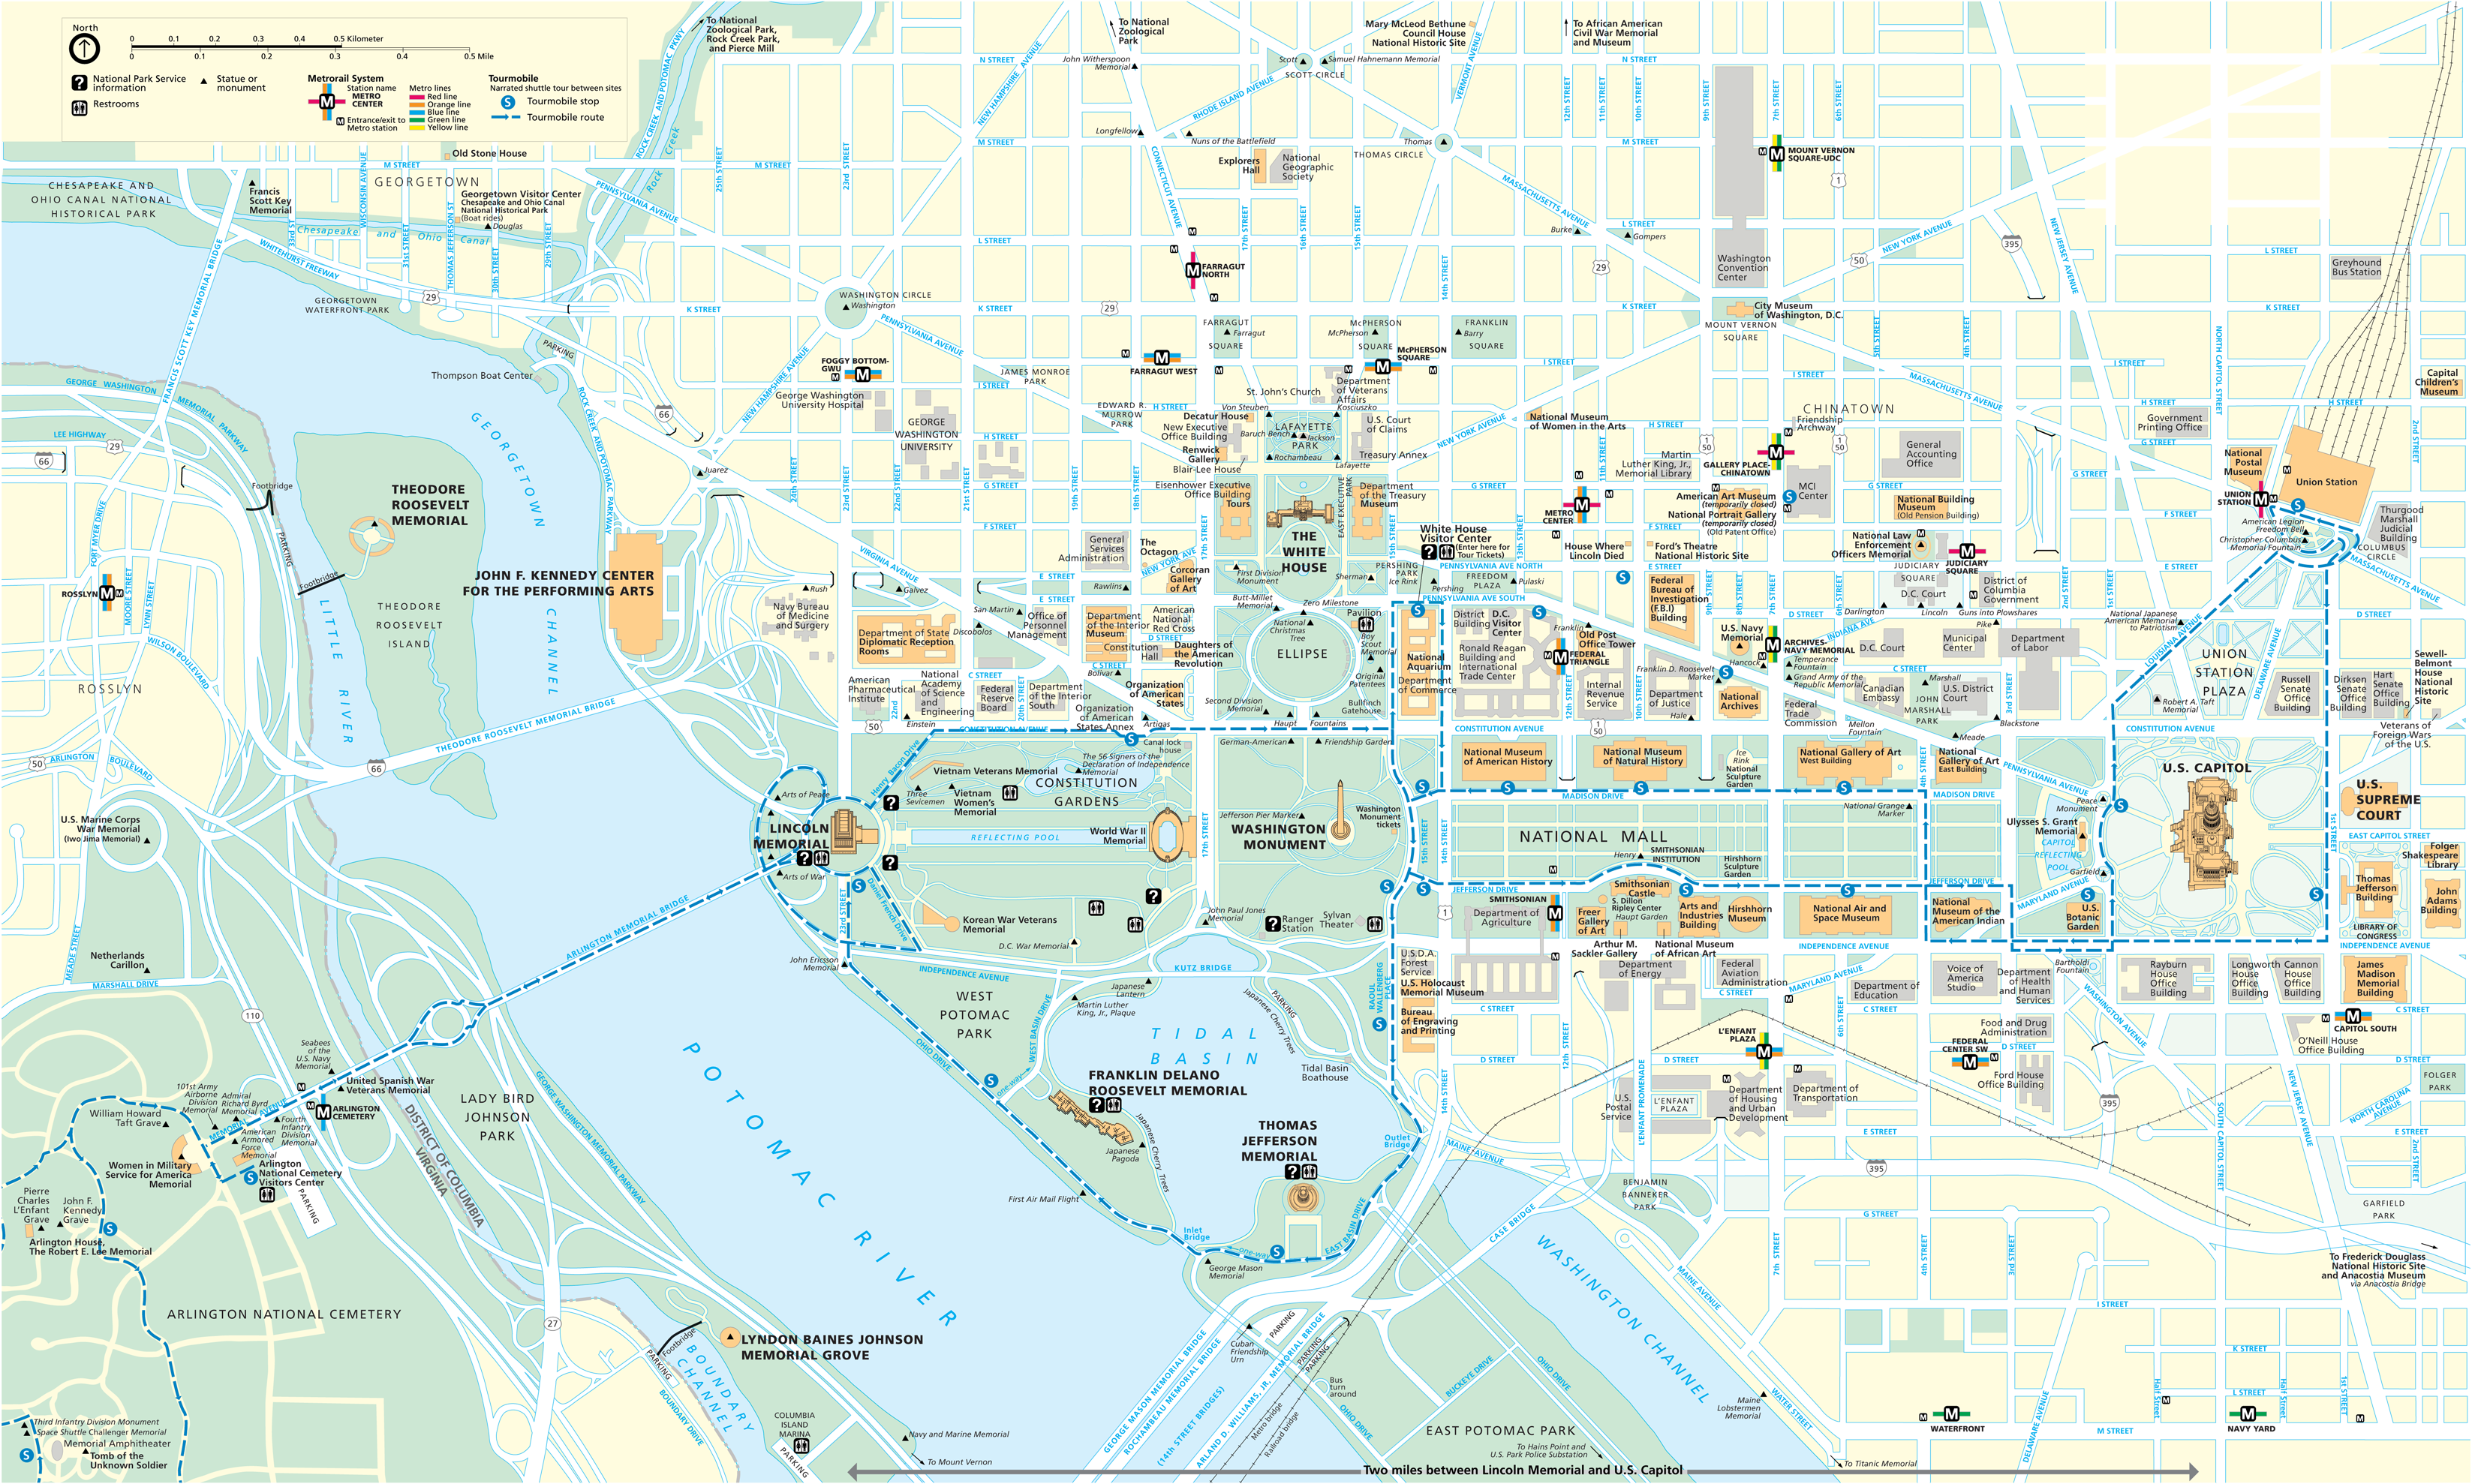 Pin by lindsay piffer on Painting | Tourist map, Washington ...